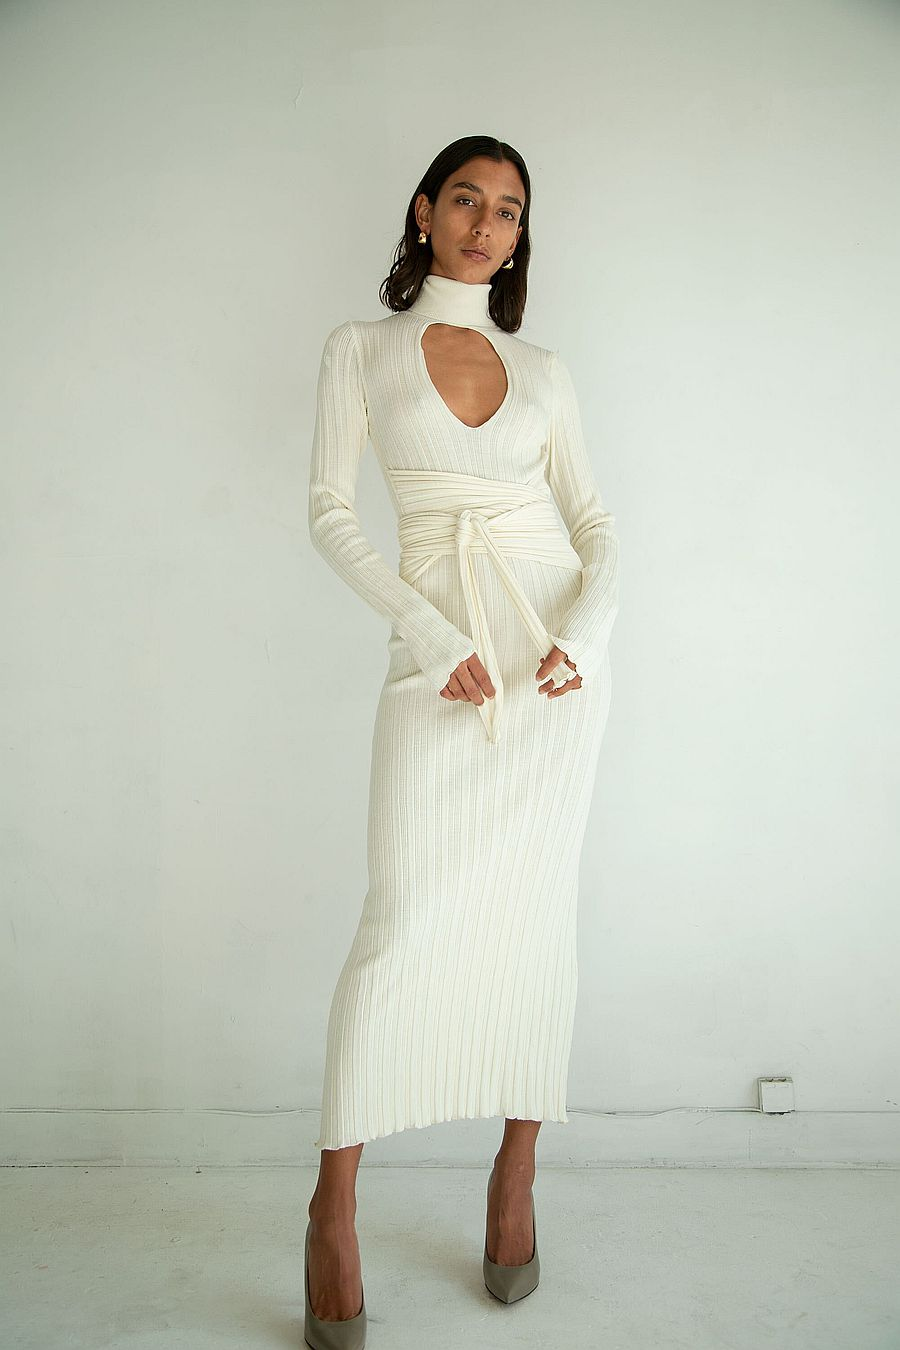 The Line by K Malcolm Dress